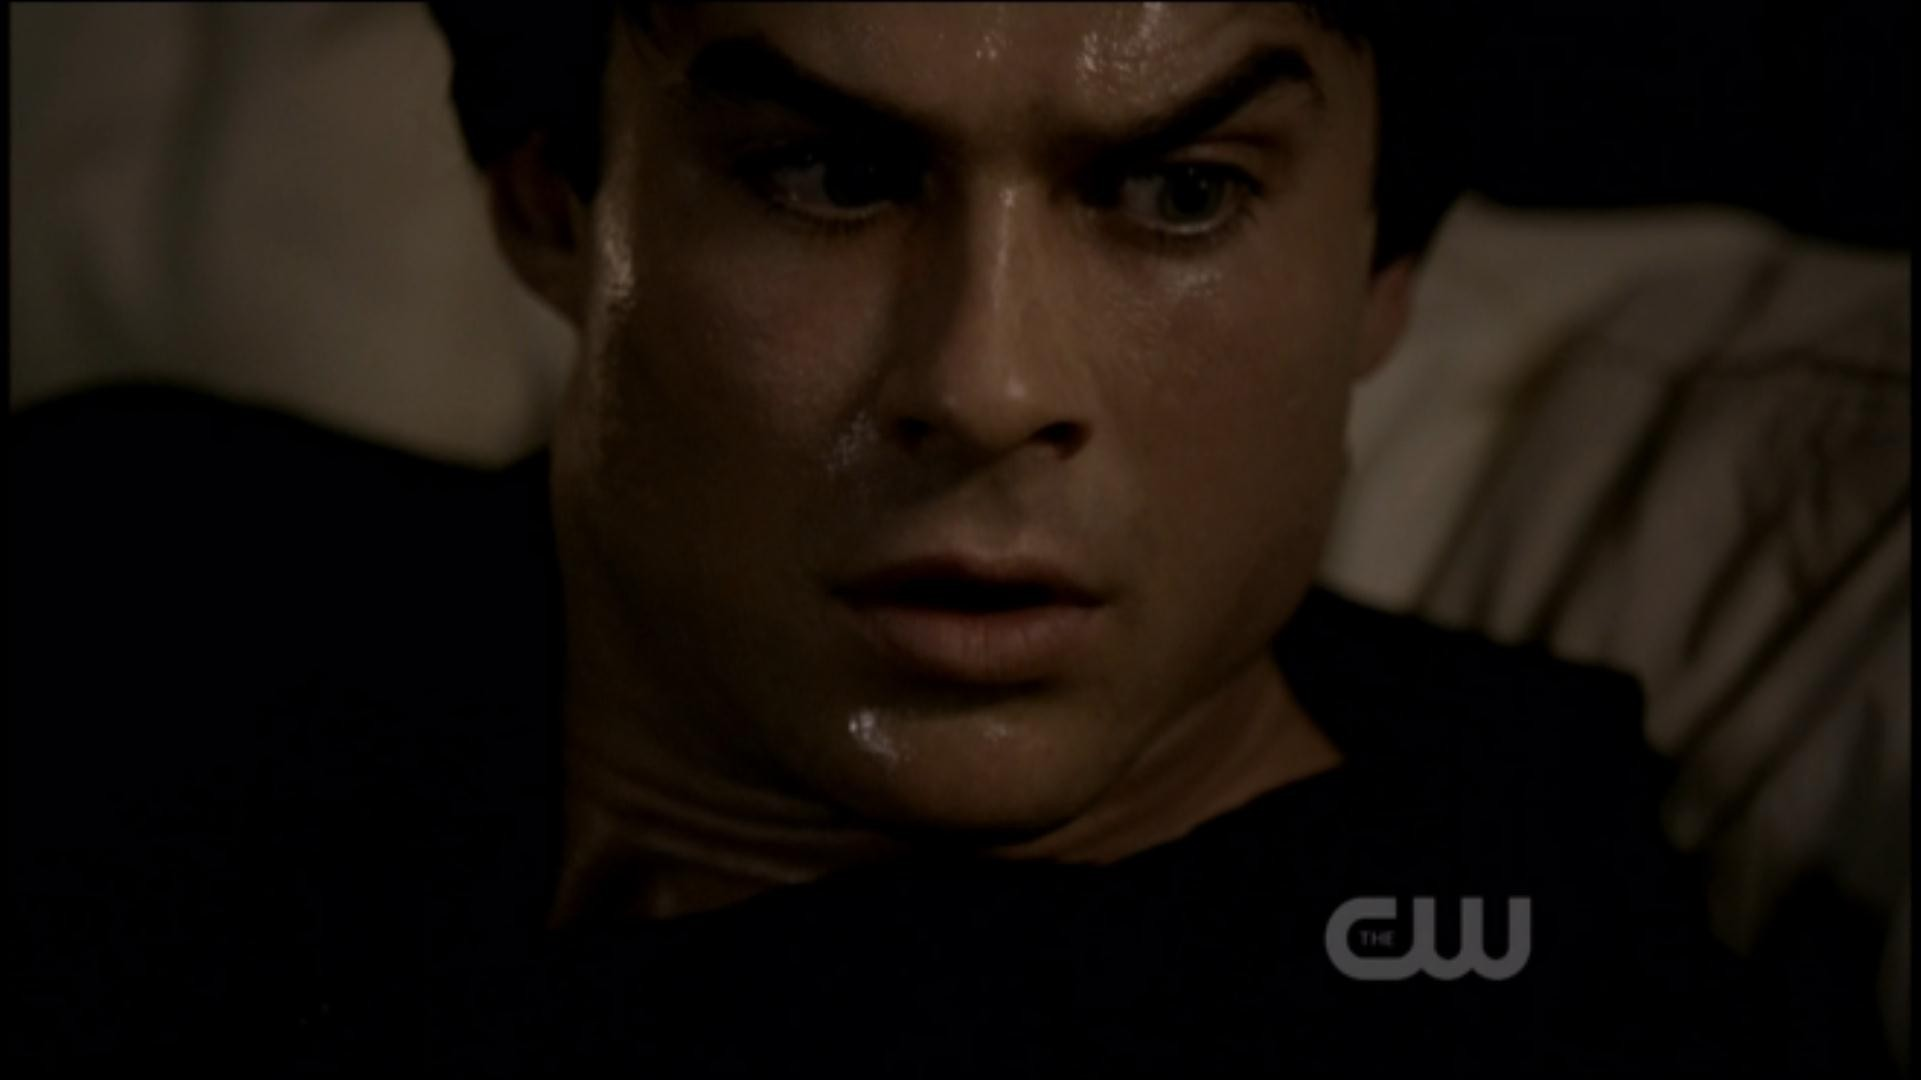 As Damon 2x22 As I Lay Dying Ian Somerhalder Image 21983238